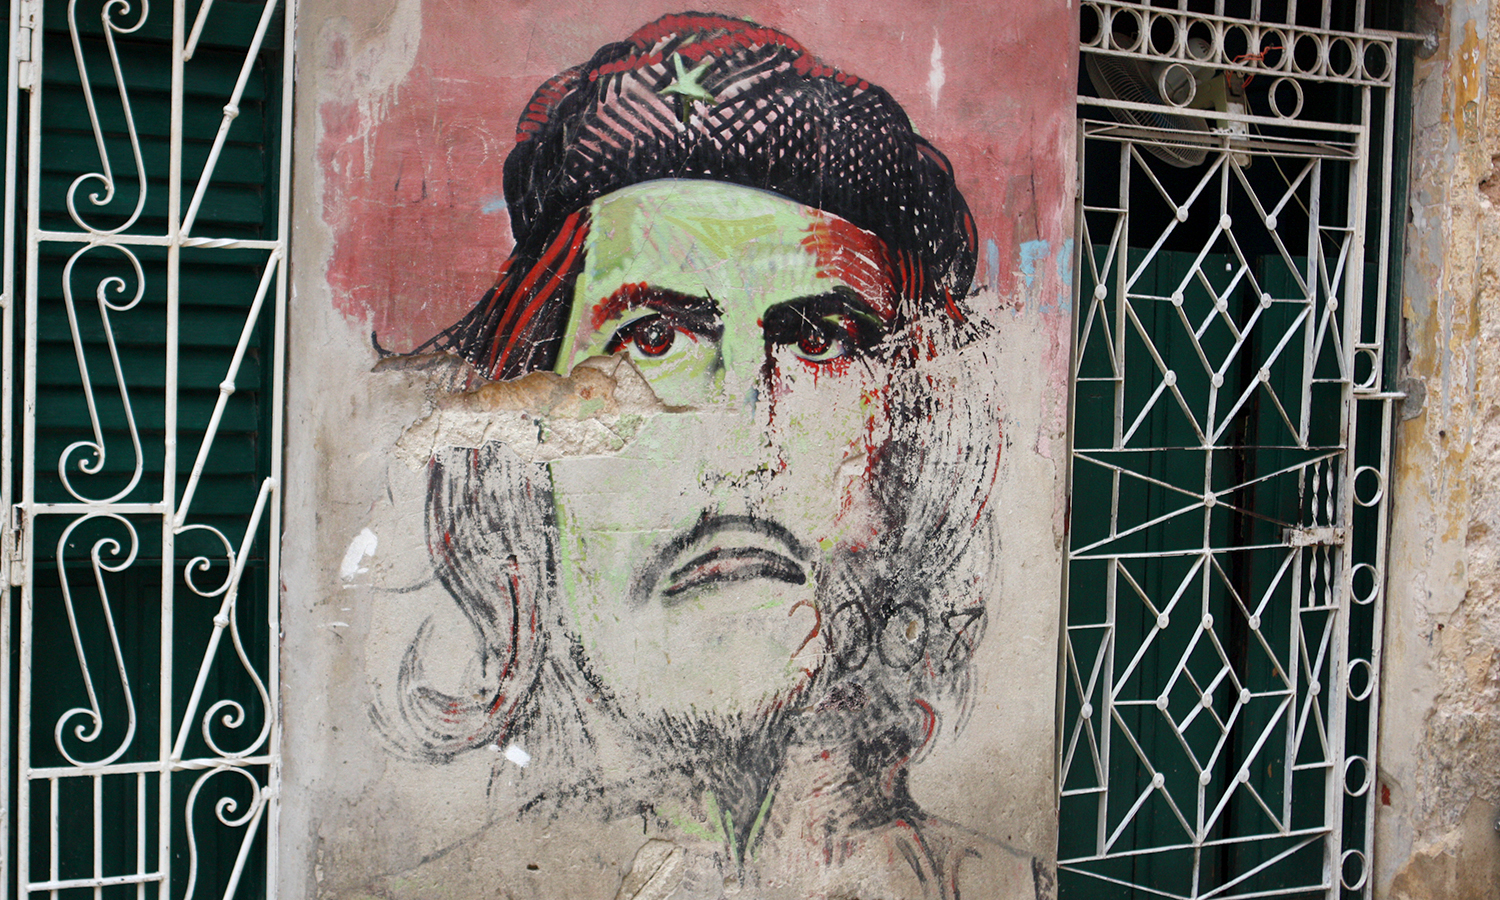 A mural on the side of a building in Santa Clara of Che Guevara, which commemorates his heroic efforts during the revolution.